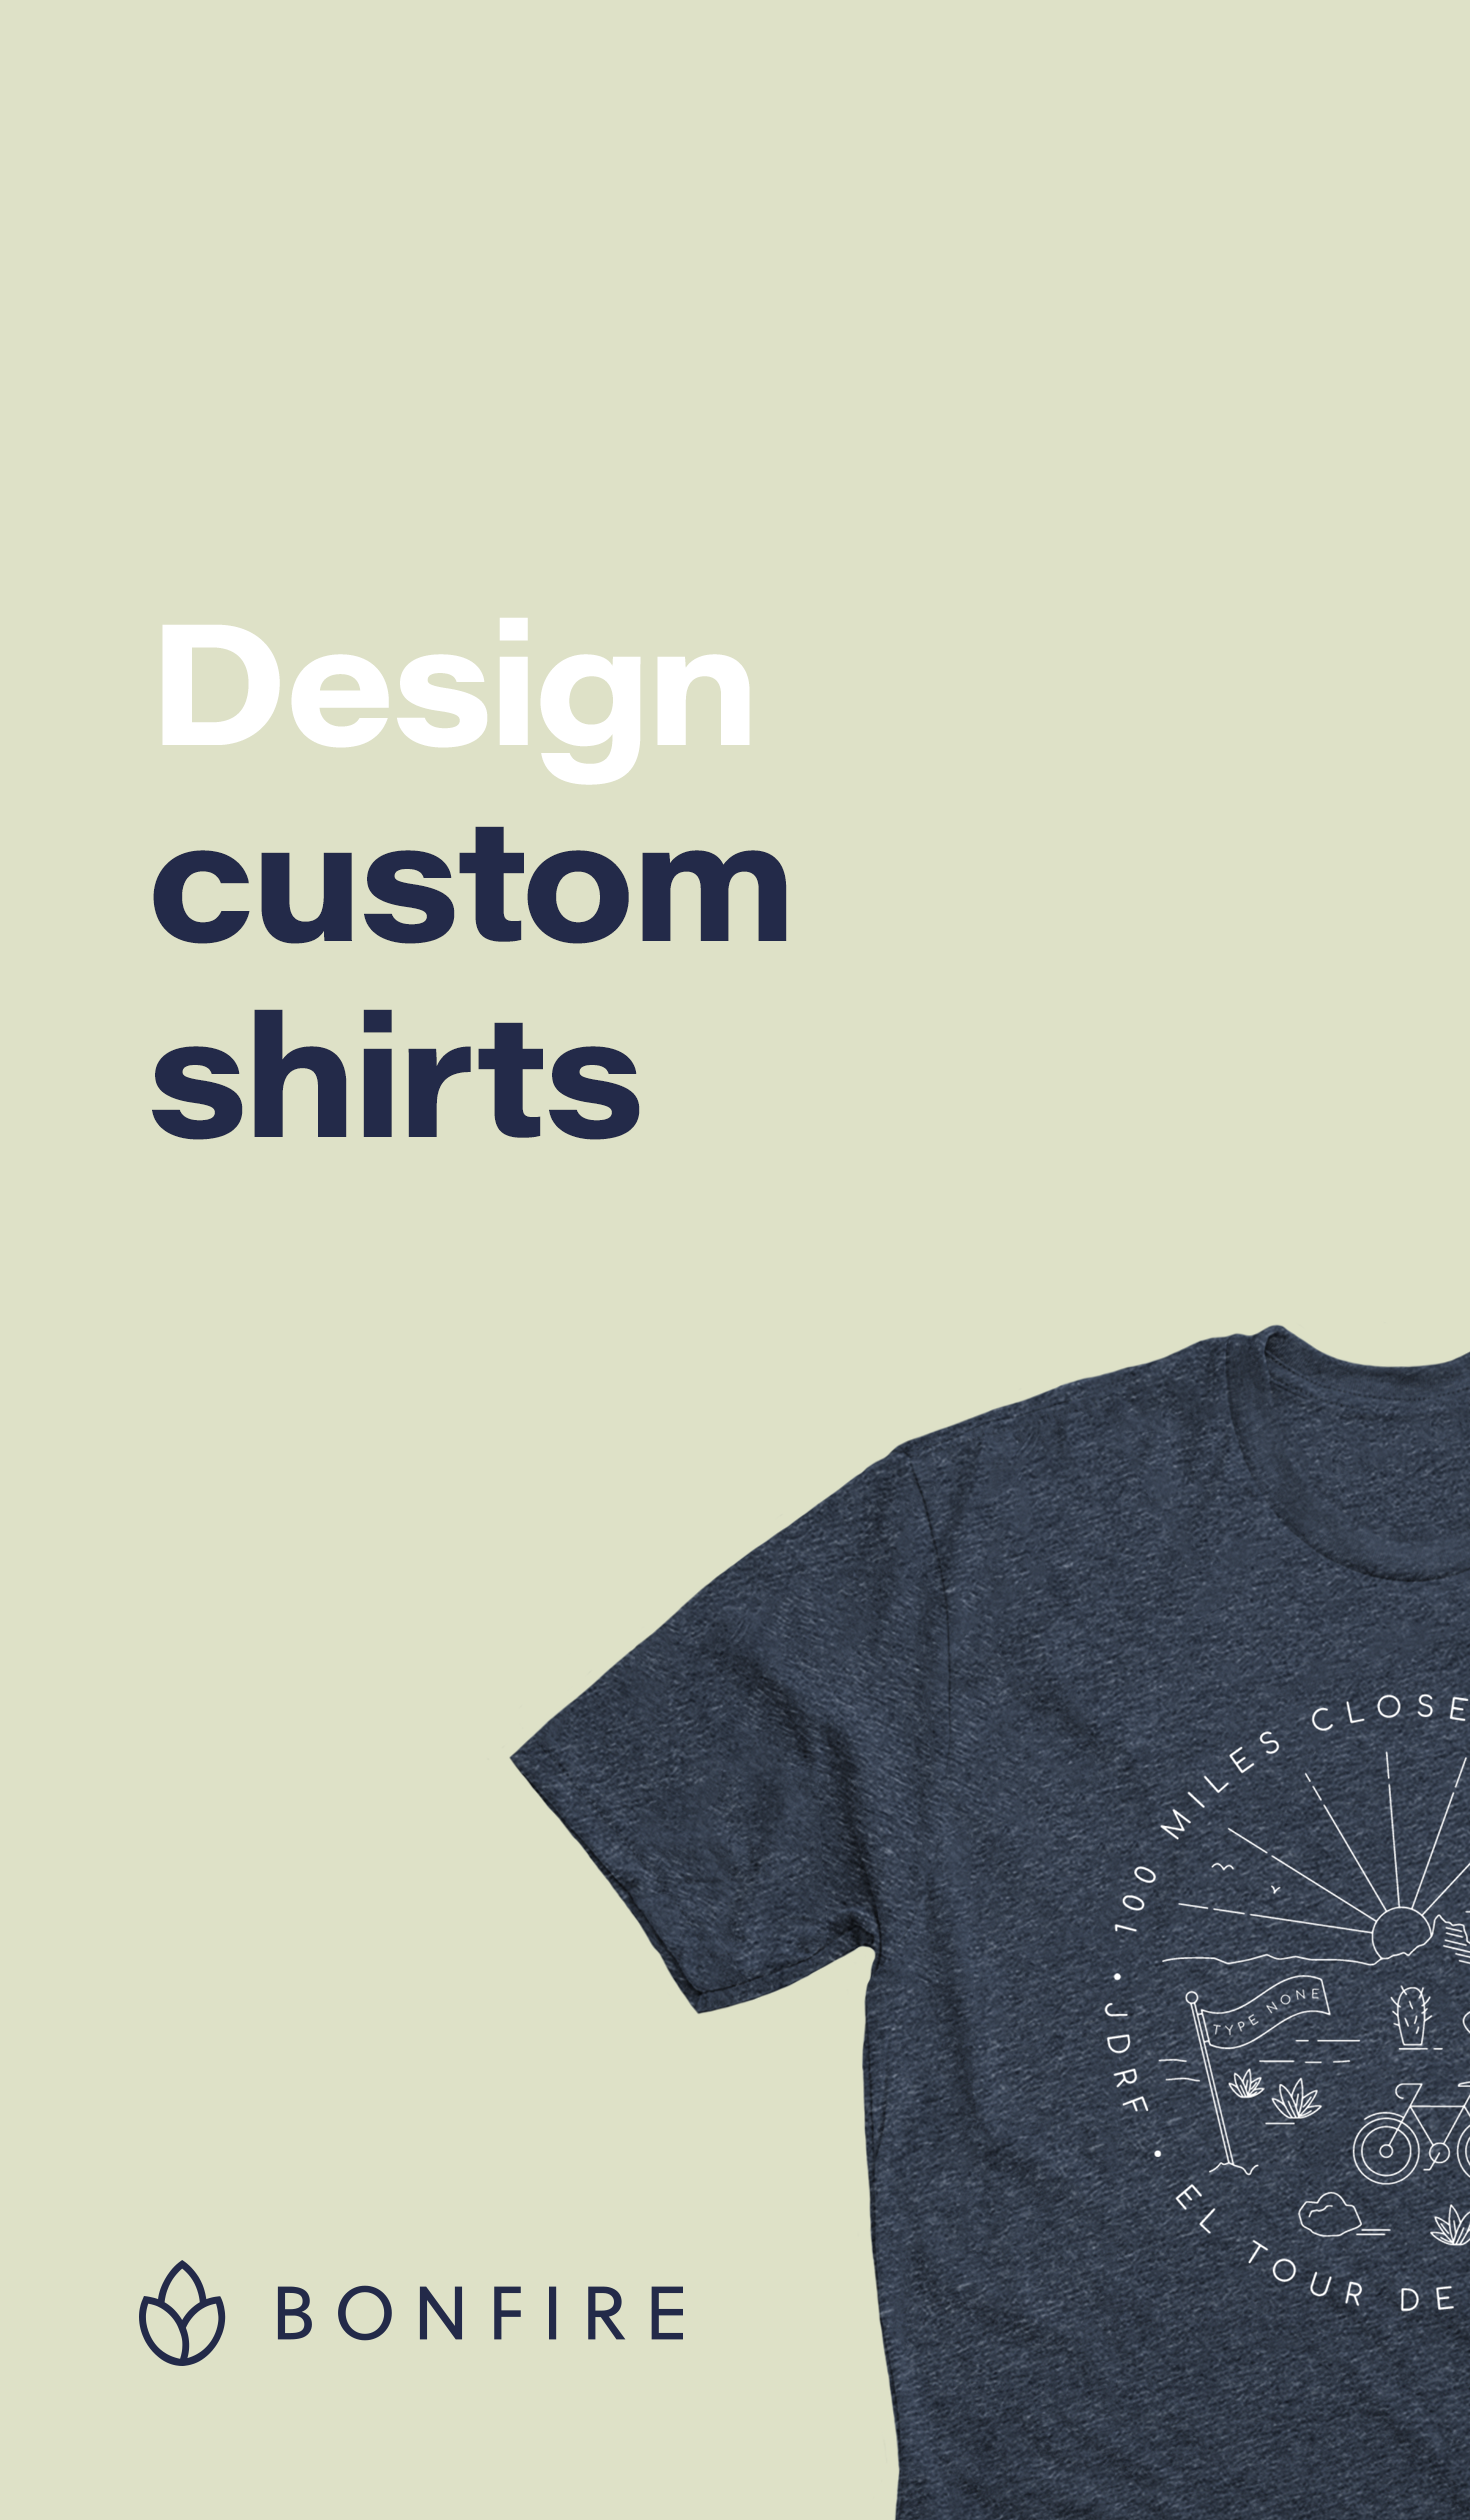 Design Custom T Shirts On Bonfire Create Your Own Design And